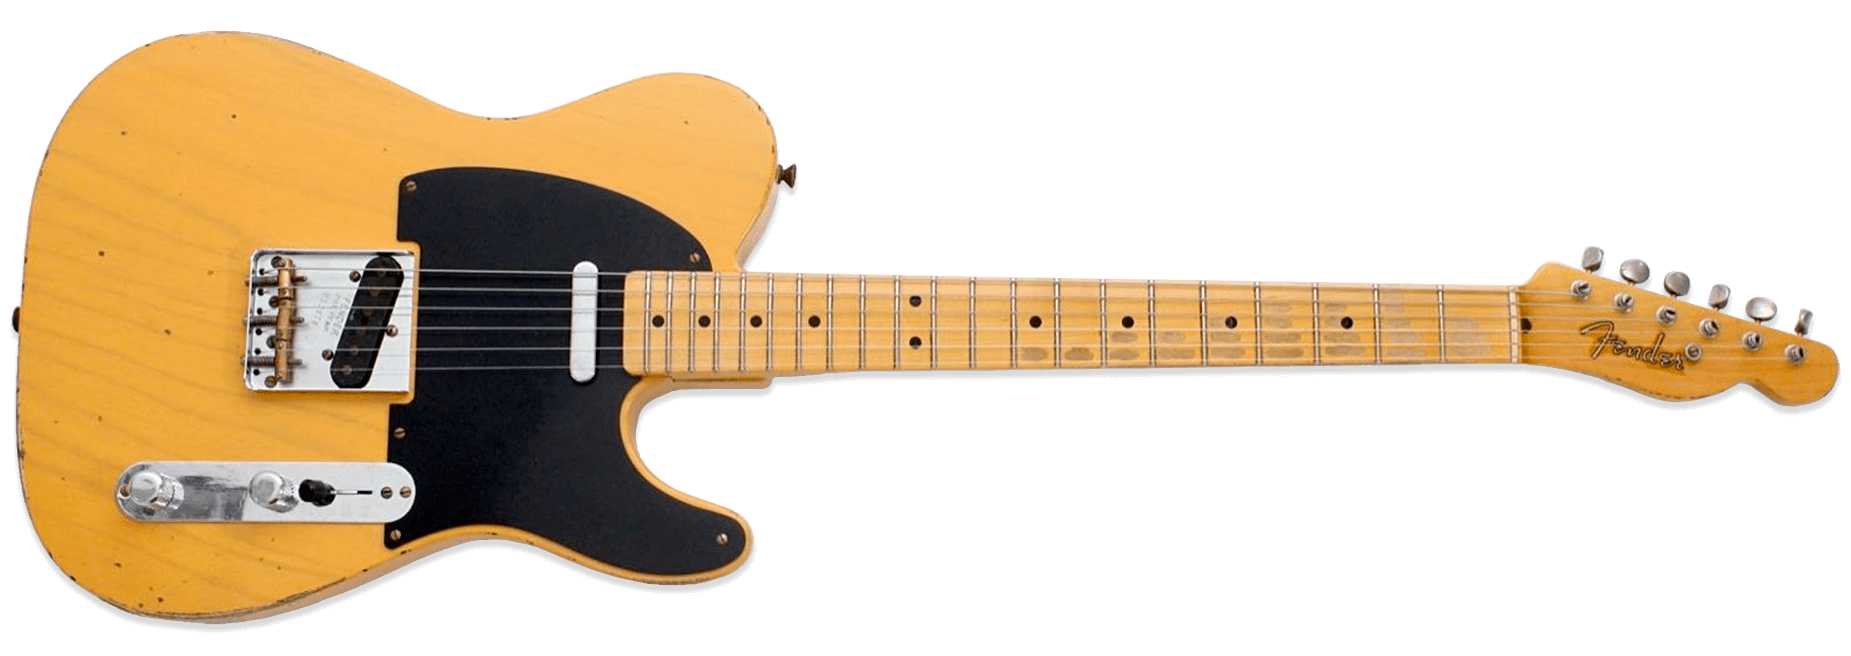 Fender 51 Custom Shop Nocaster Relic